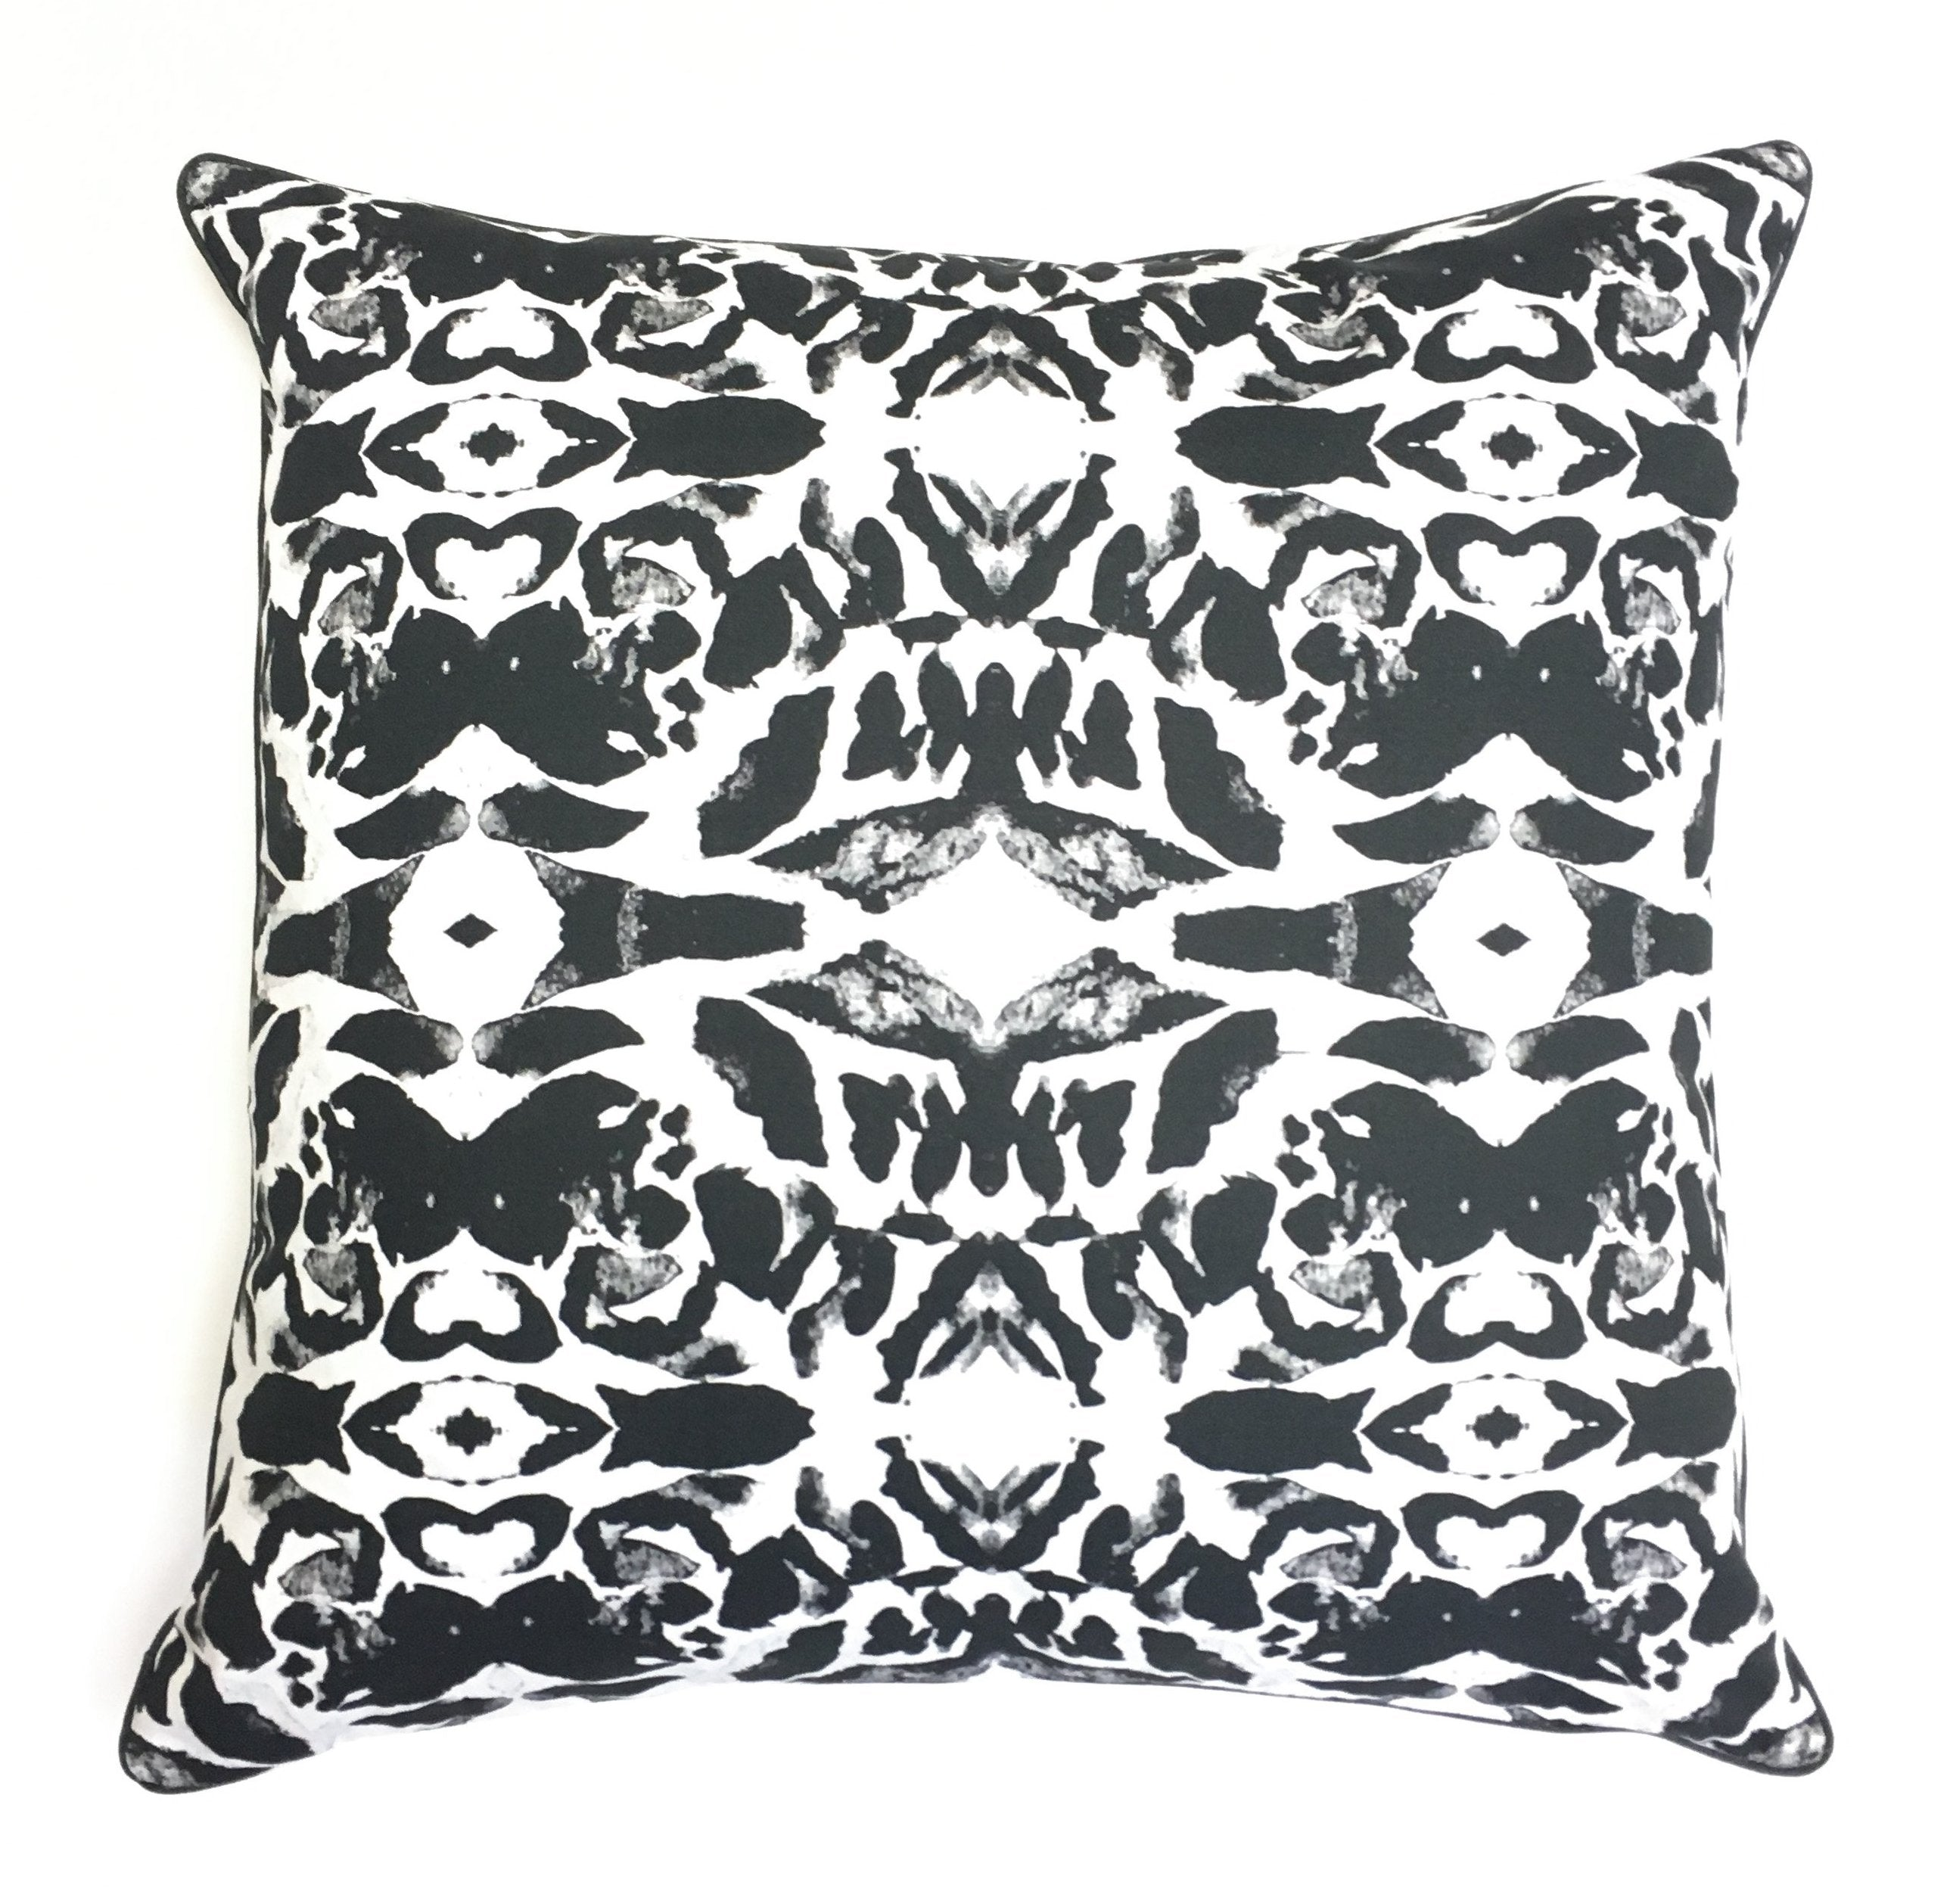 Pillow Cover - Moroccan (Black)